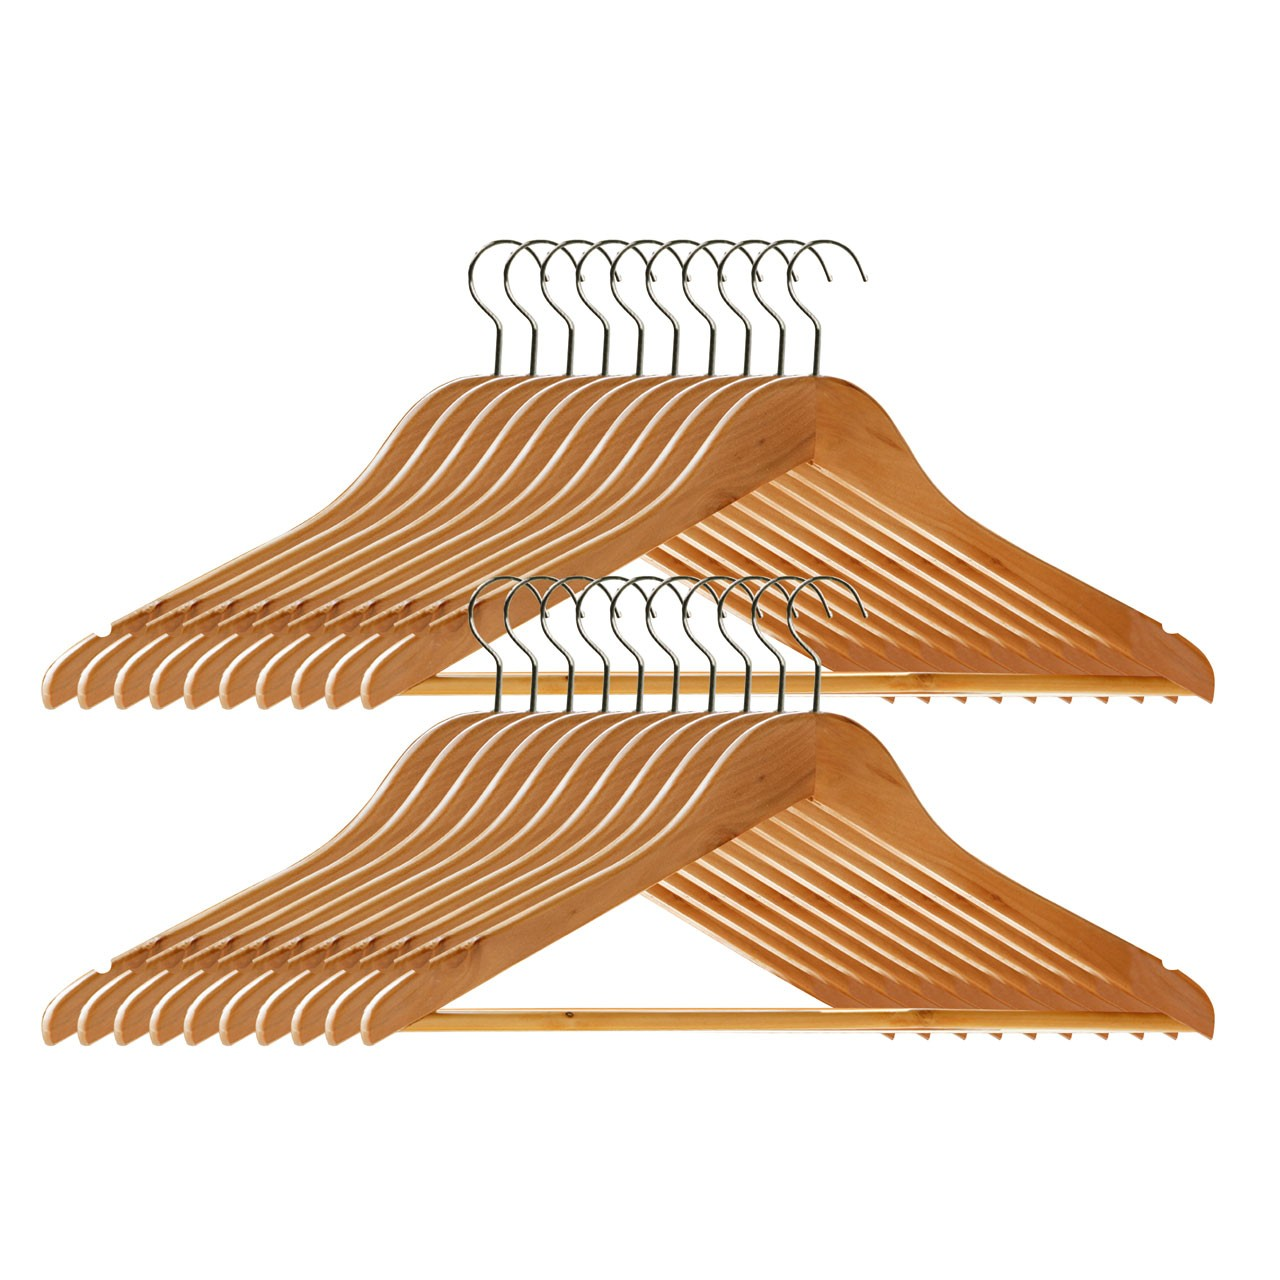 Prime Furnishing Wooden Clothes Hangers - Pack of 20